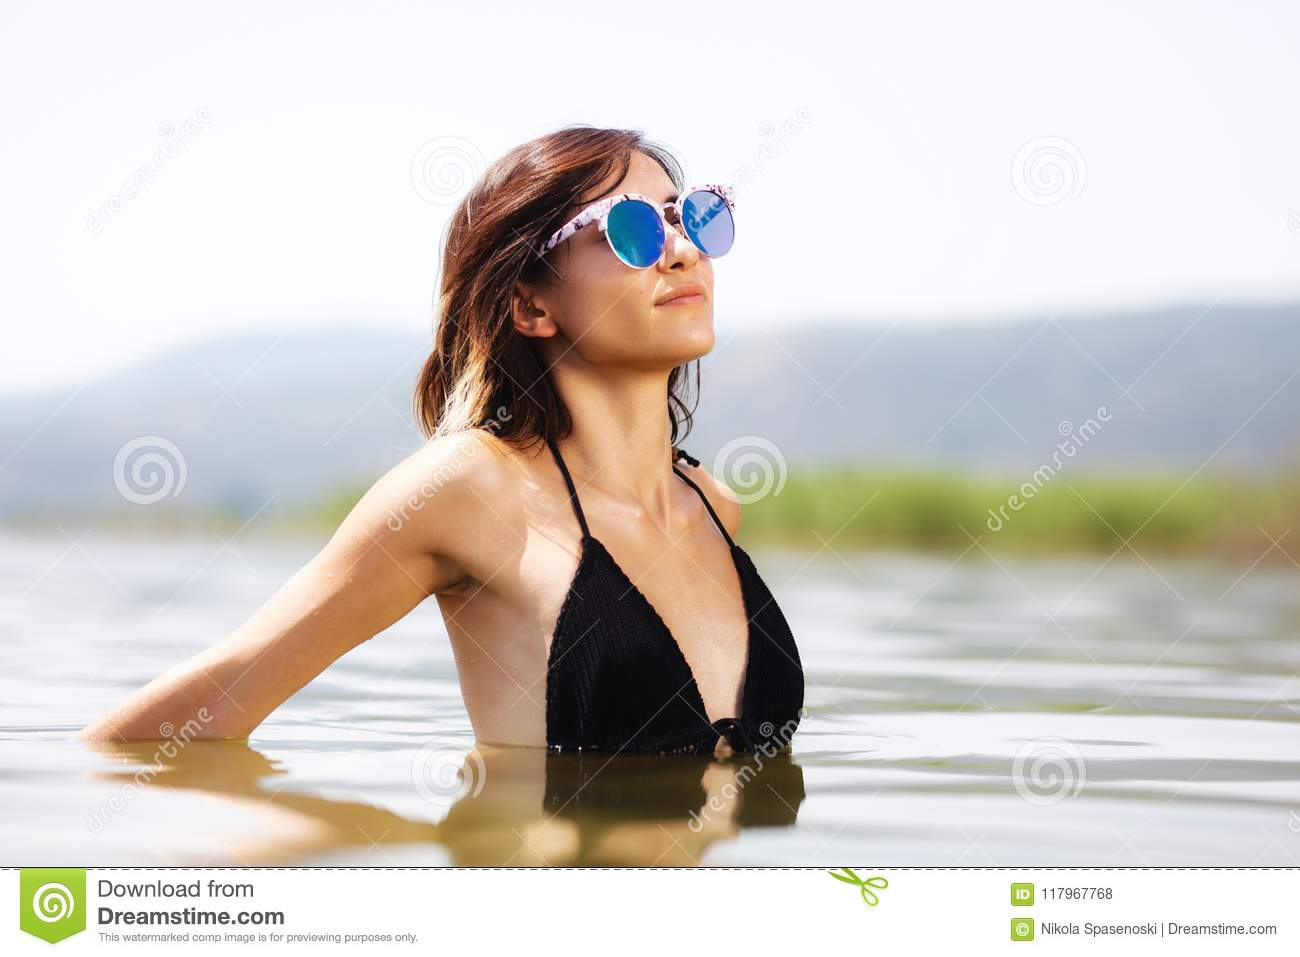 girl with glasses in water